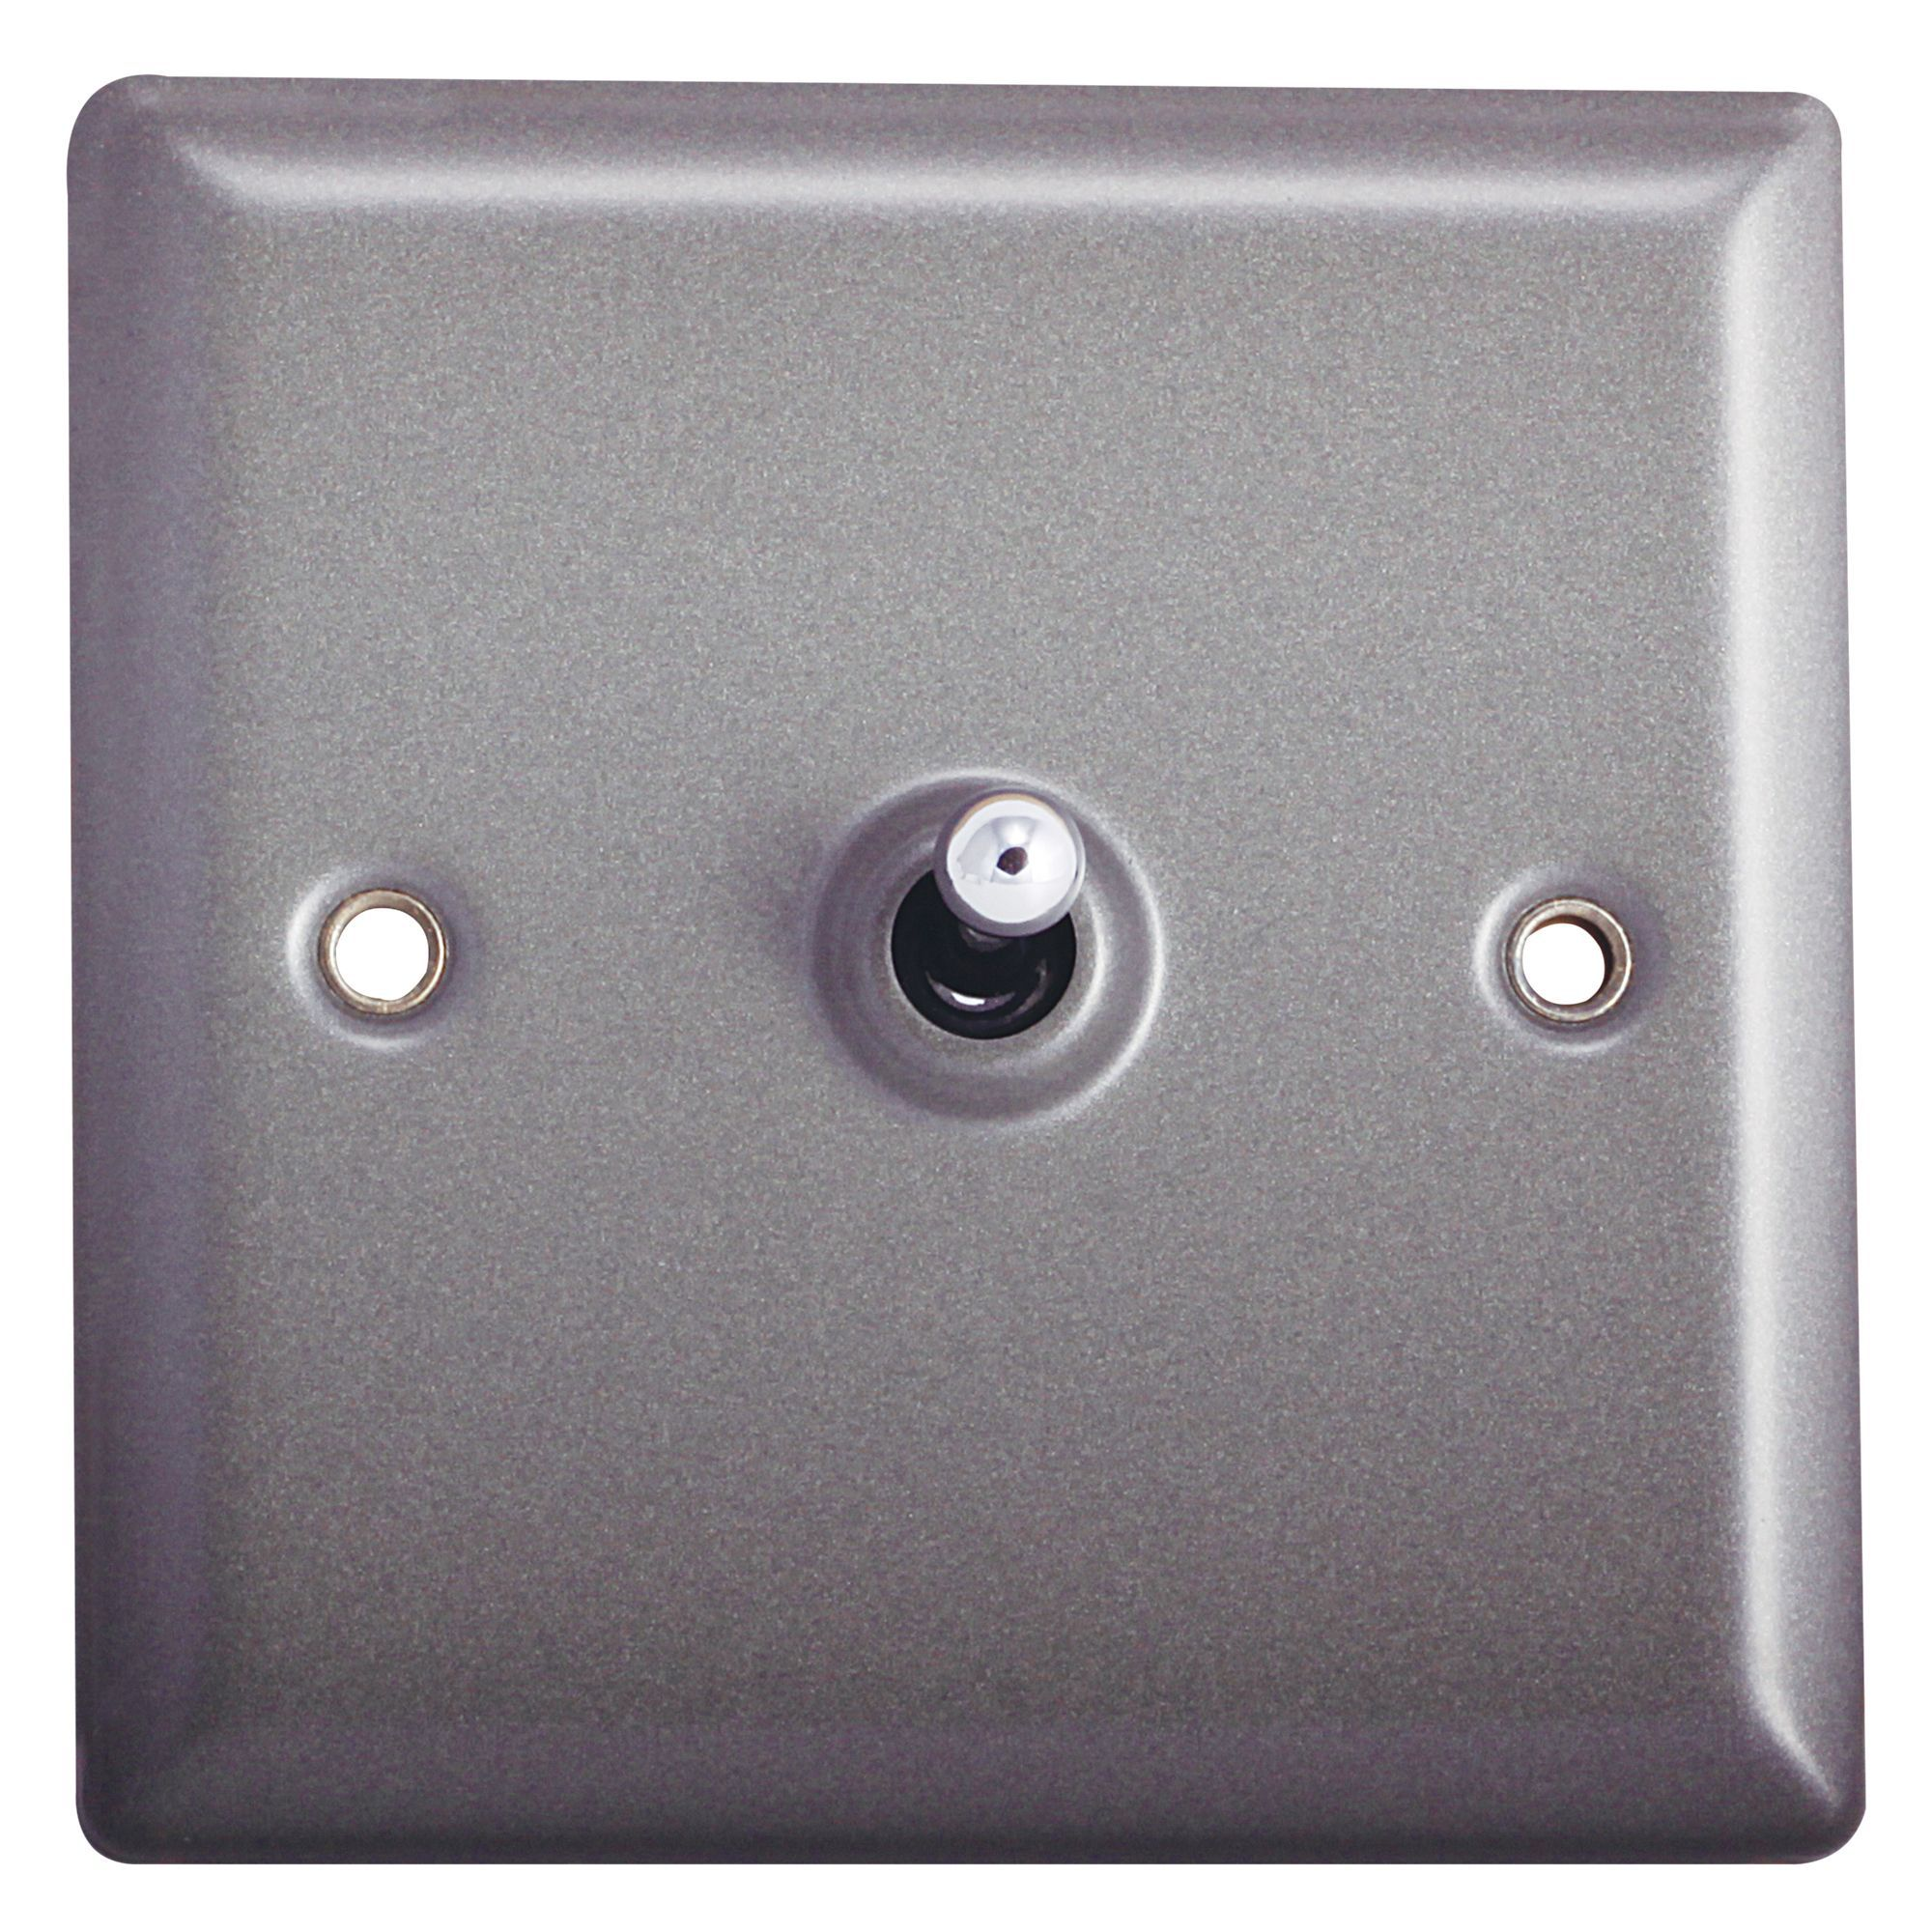 Holder 10a 2-way Single Pewter Toggle Switch